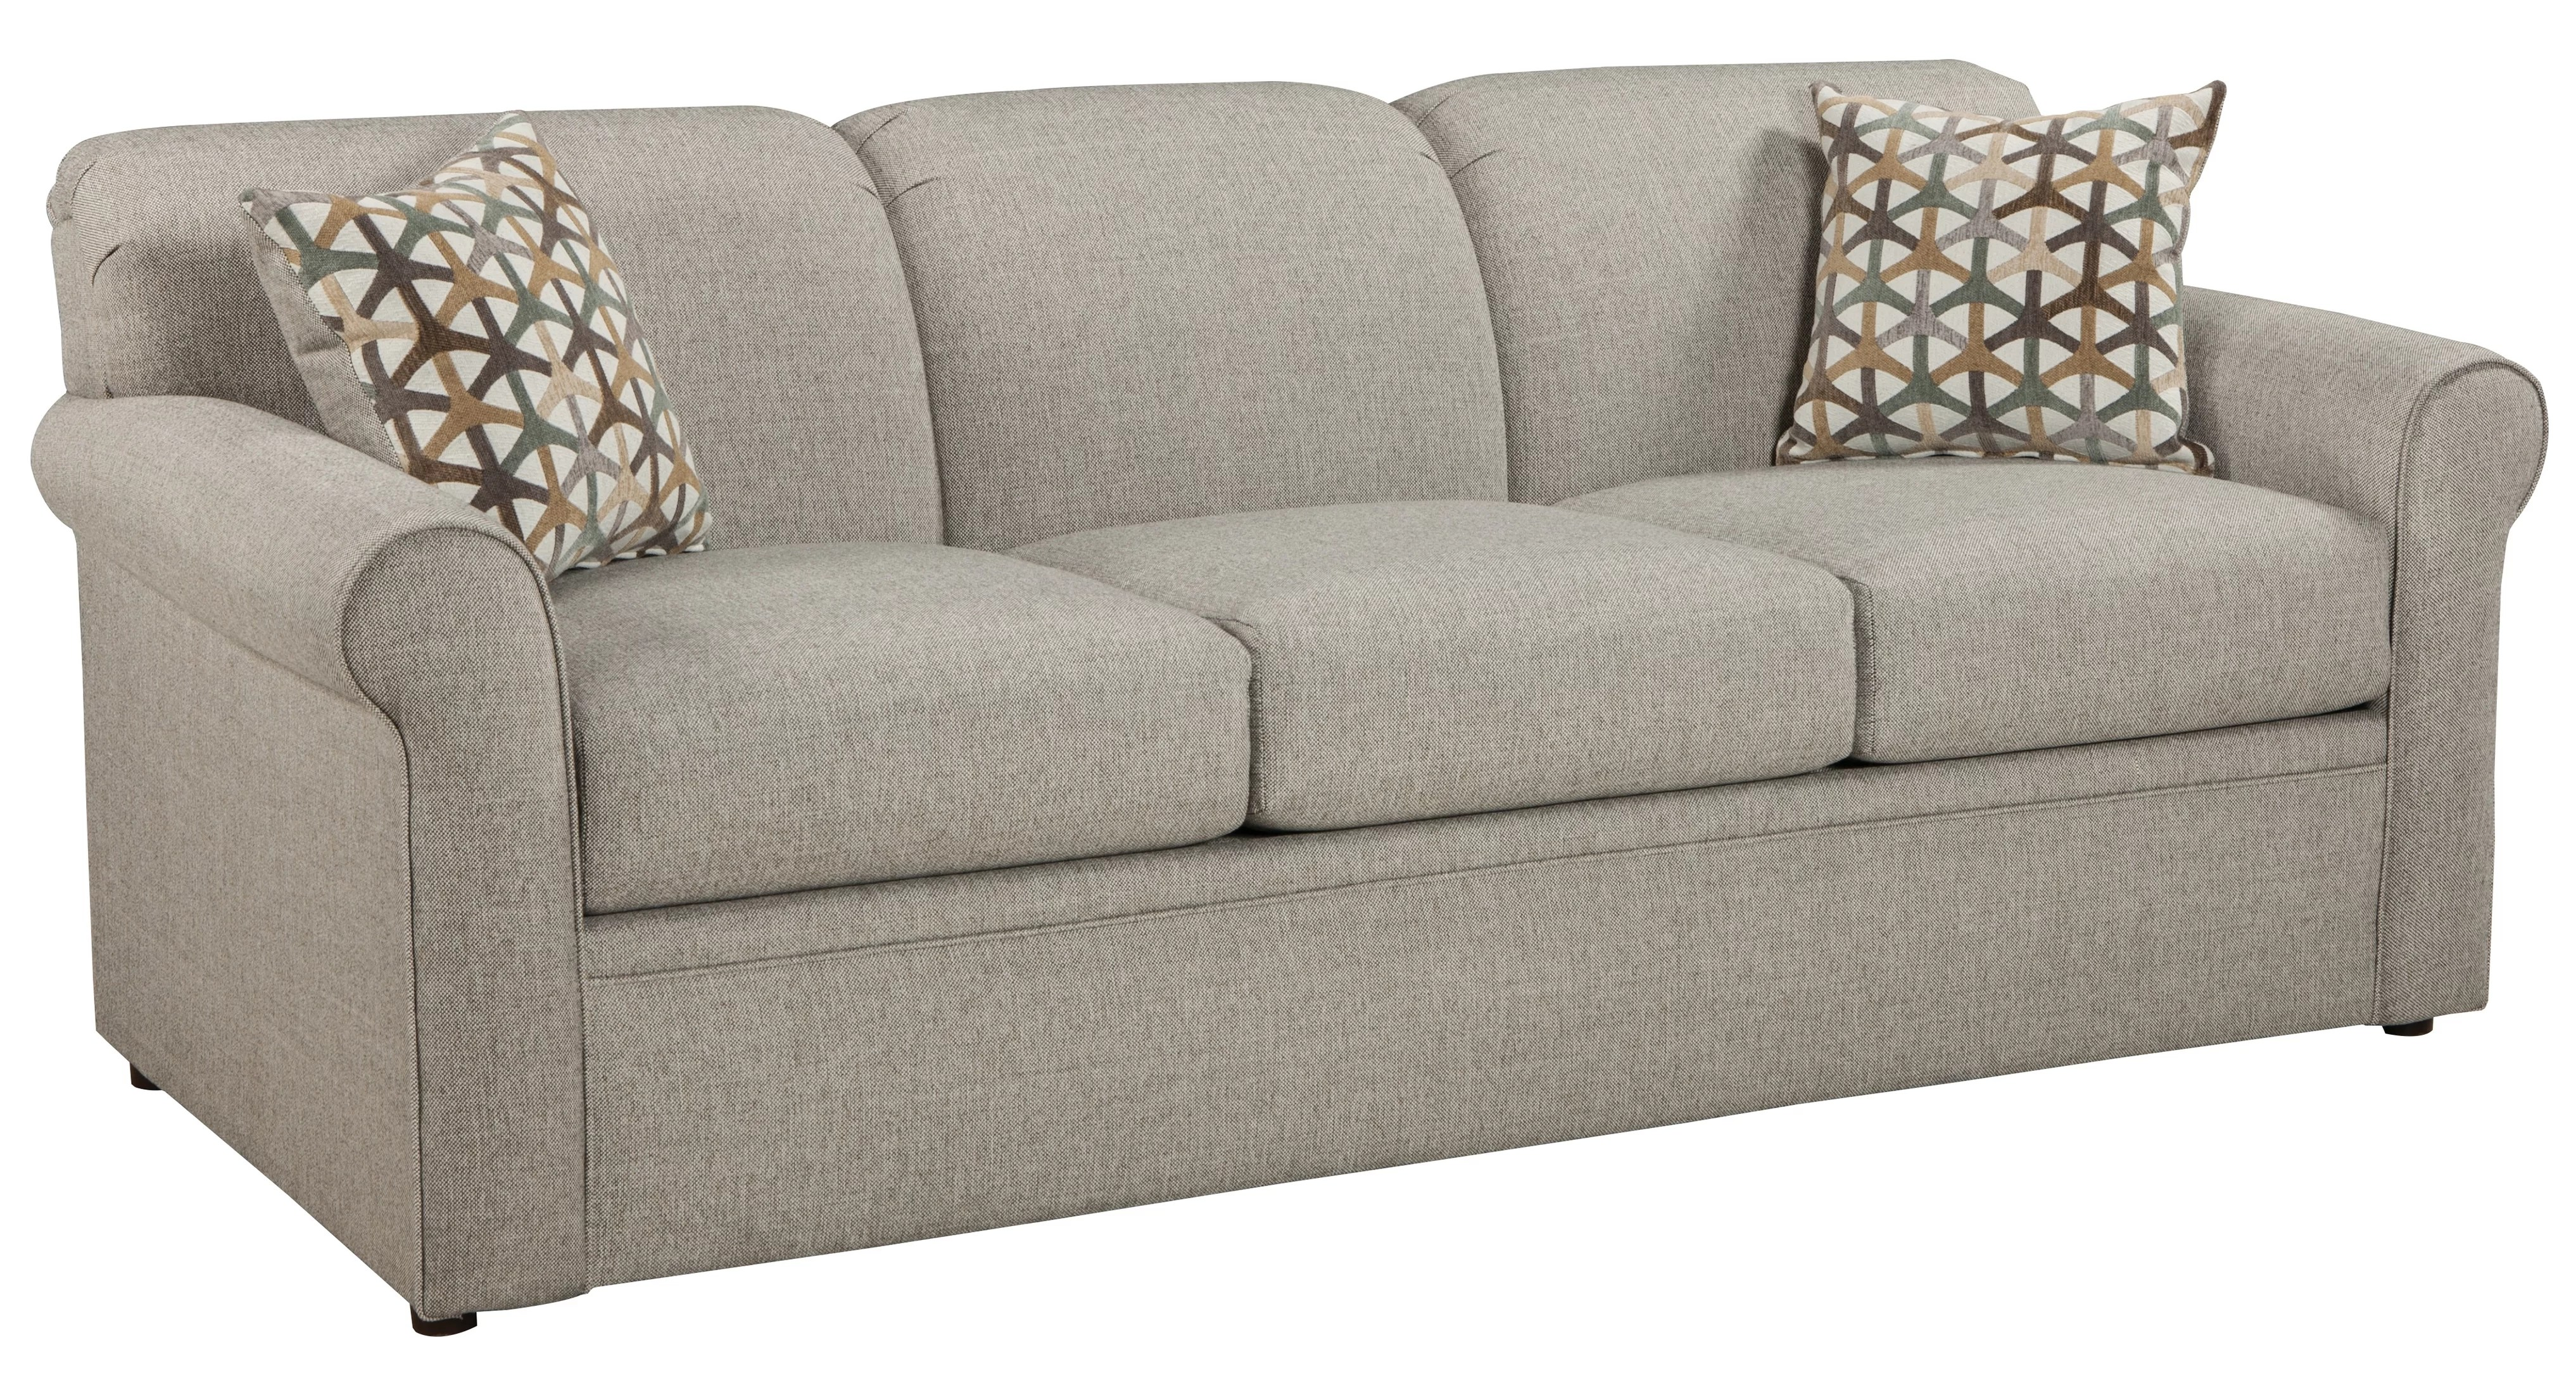 Sofa Beds Free Shipping Over 35 Wayfair